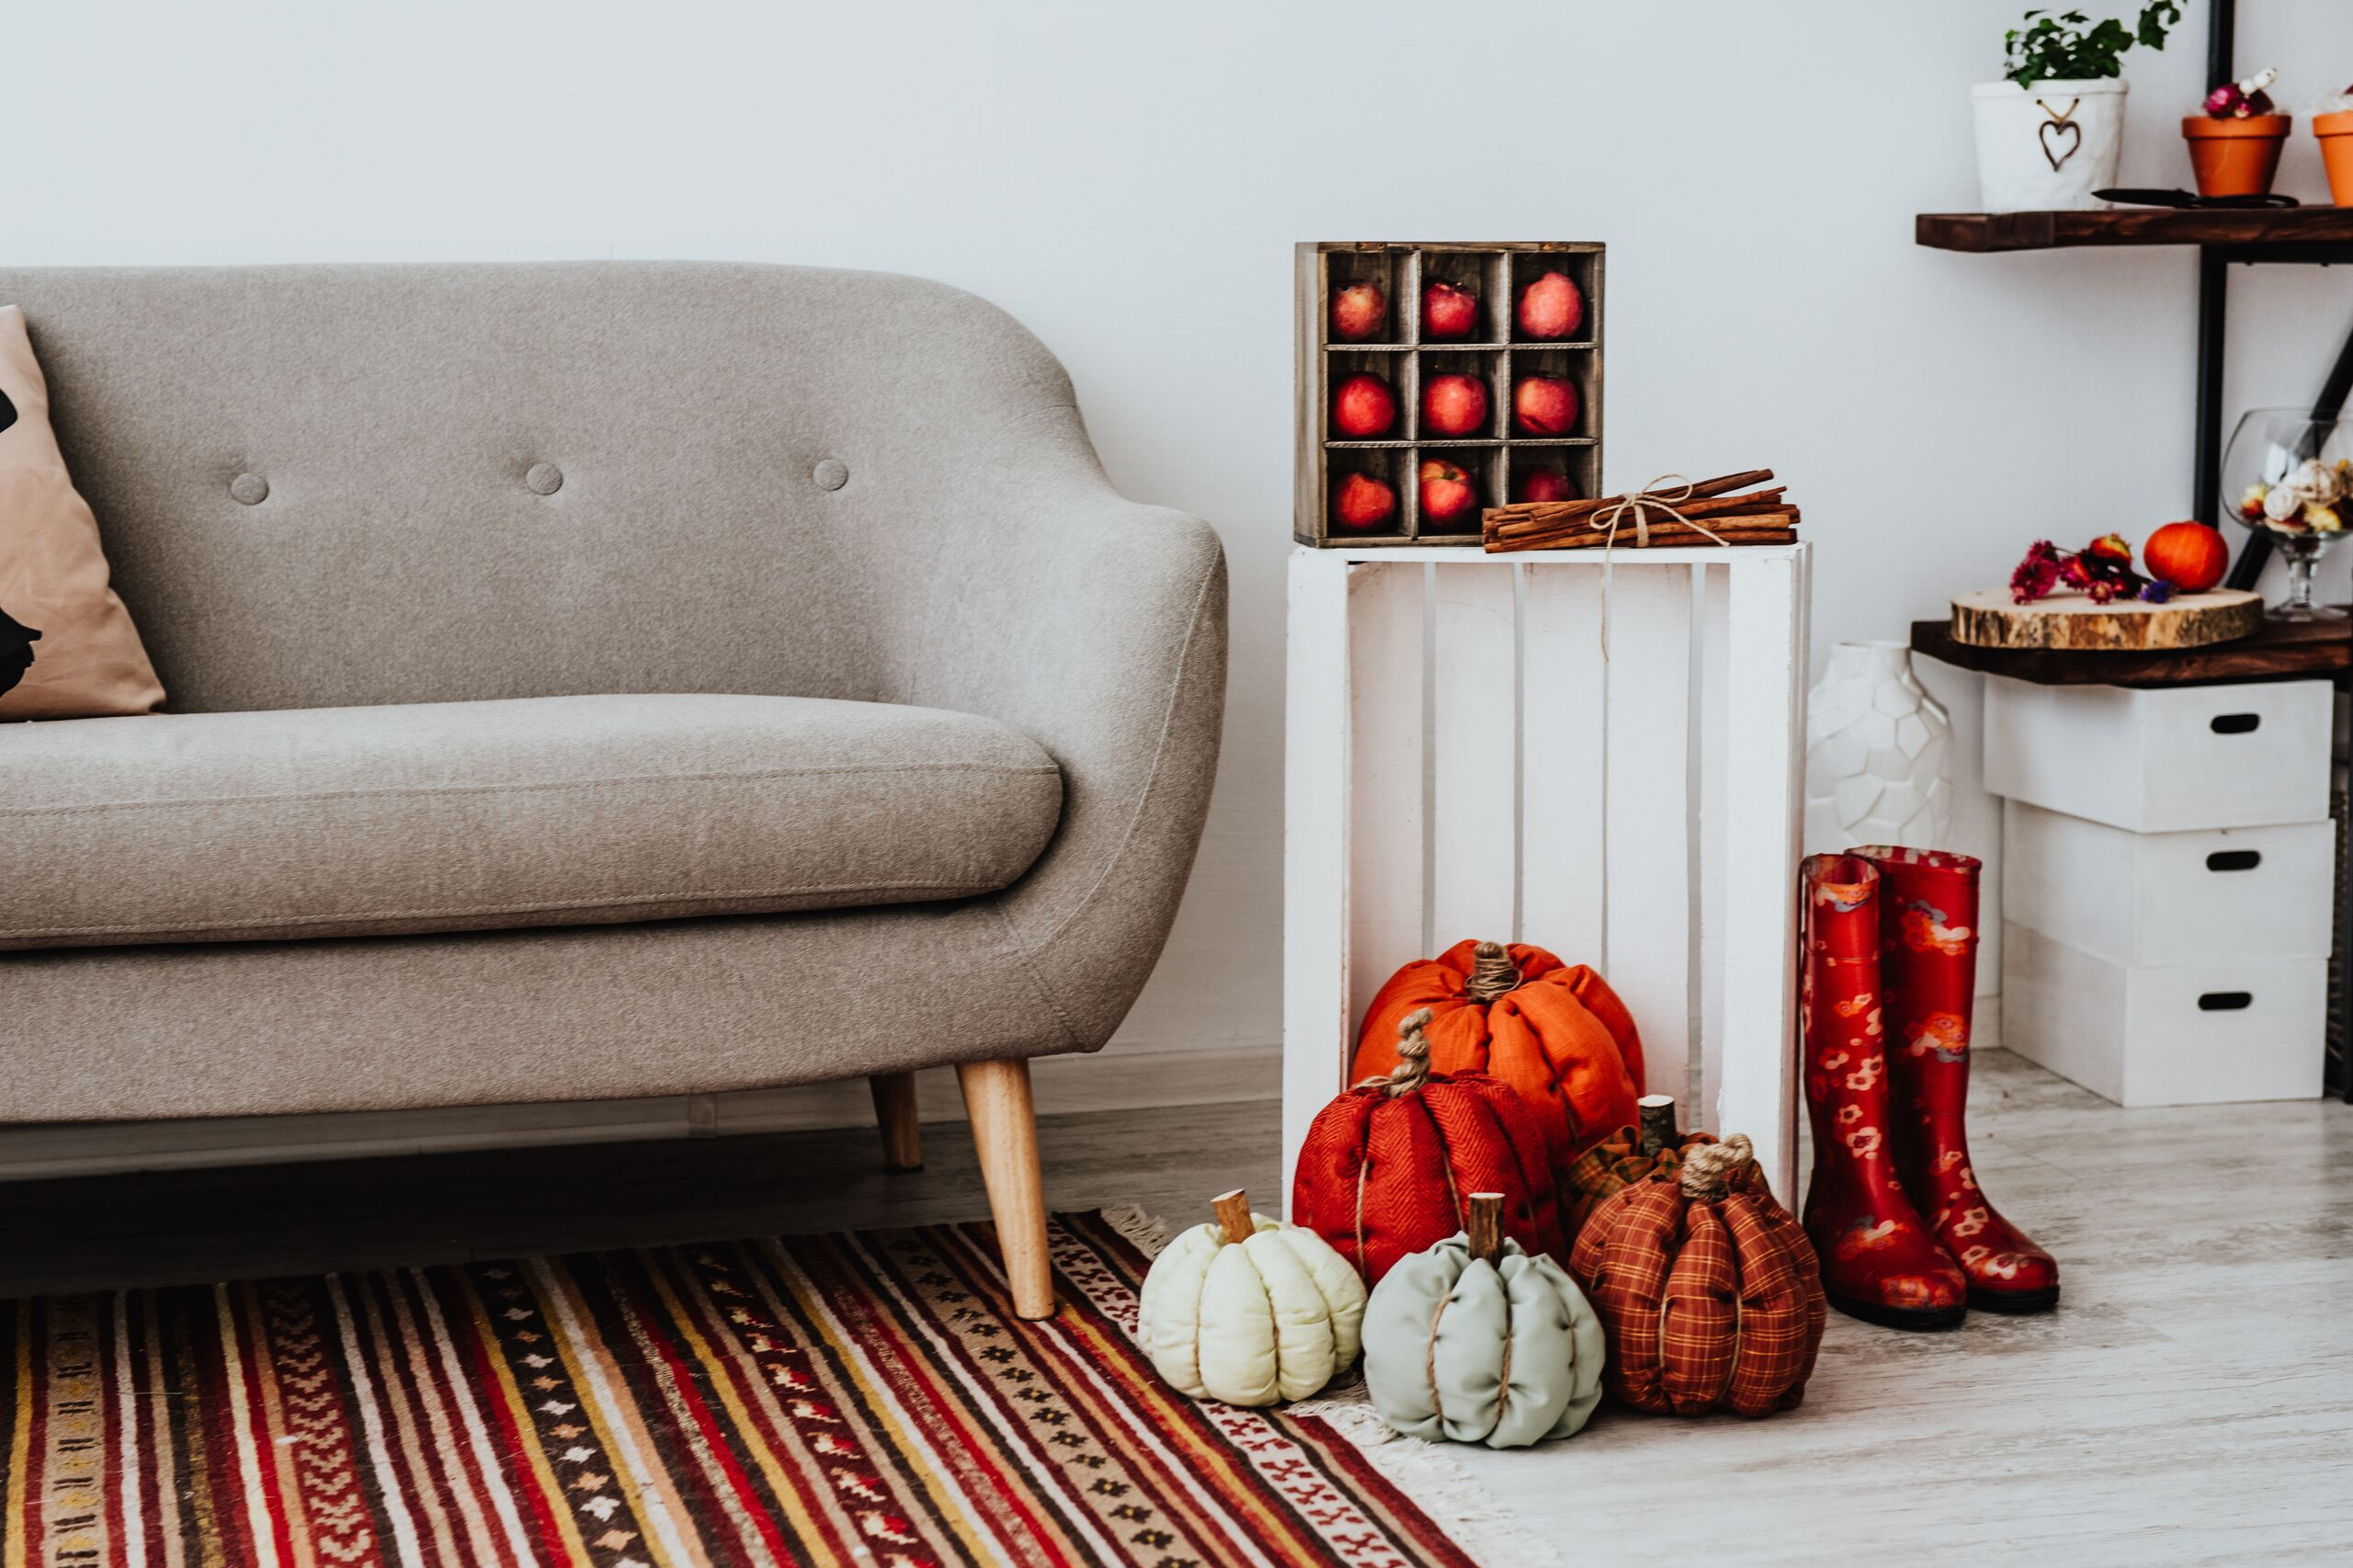 5 Simple Ways to Spice Up Your Apartment for the Fall